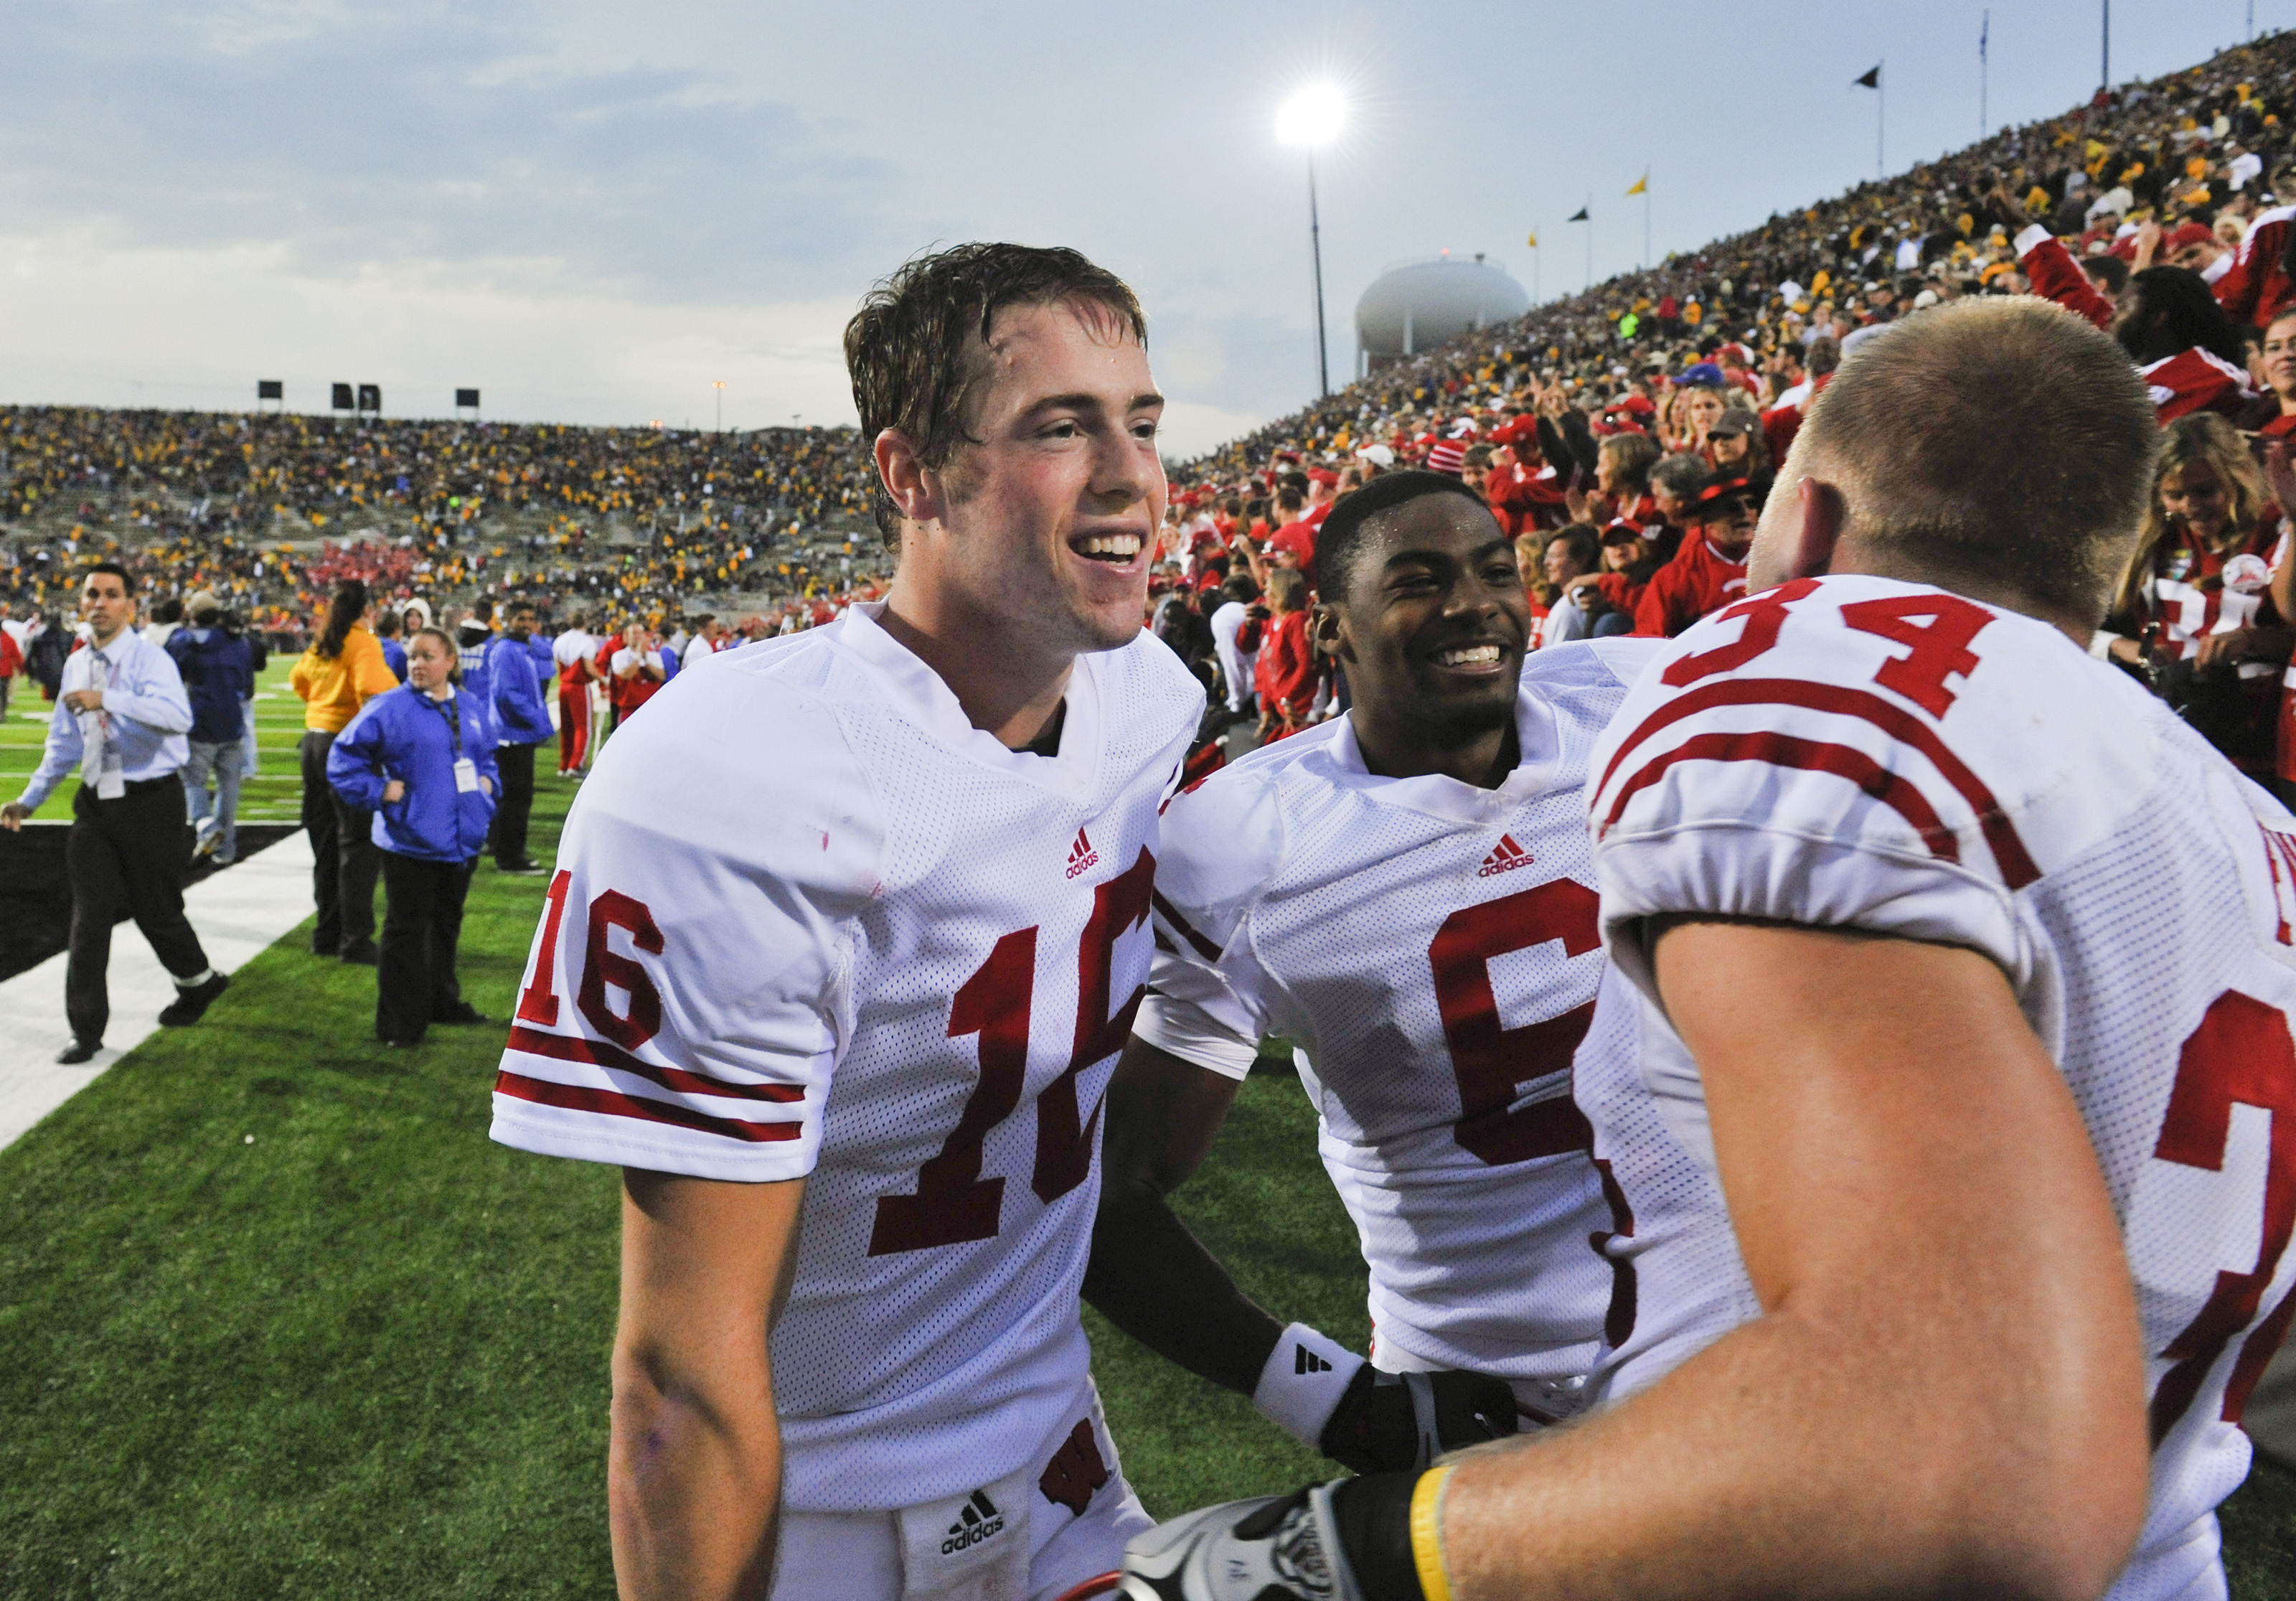 IOWA CITY, IA - OCTOBER 23- Quarterback Scott Tolzien #16 of the Wisconsin Badgers celebrates with teammates Isaac Anderson #6 and Bradie Ewing #34 after their the University of Iowa Hawkeyes at Kinnick Stadium on October 23, 2010 in Iowa City, Iowa. Wisc